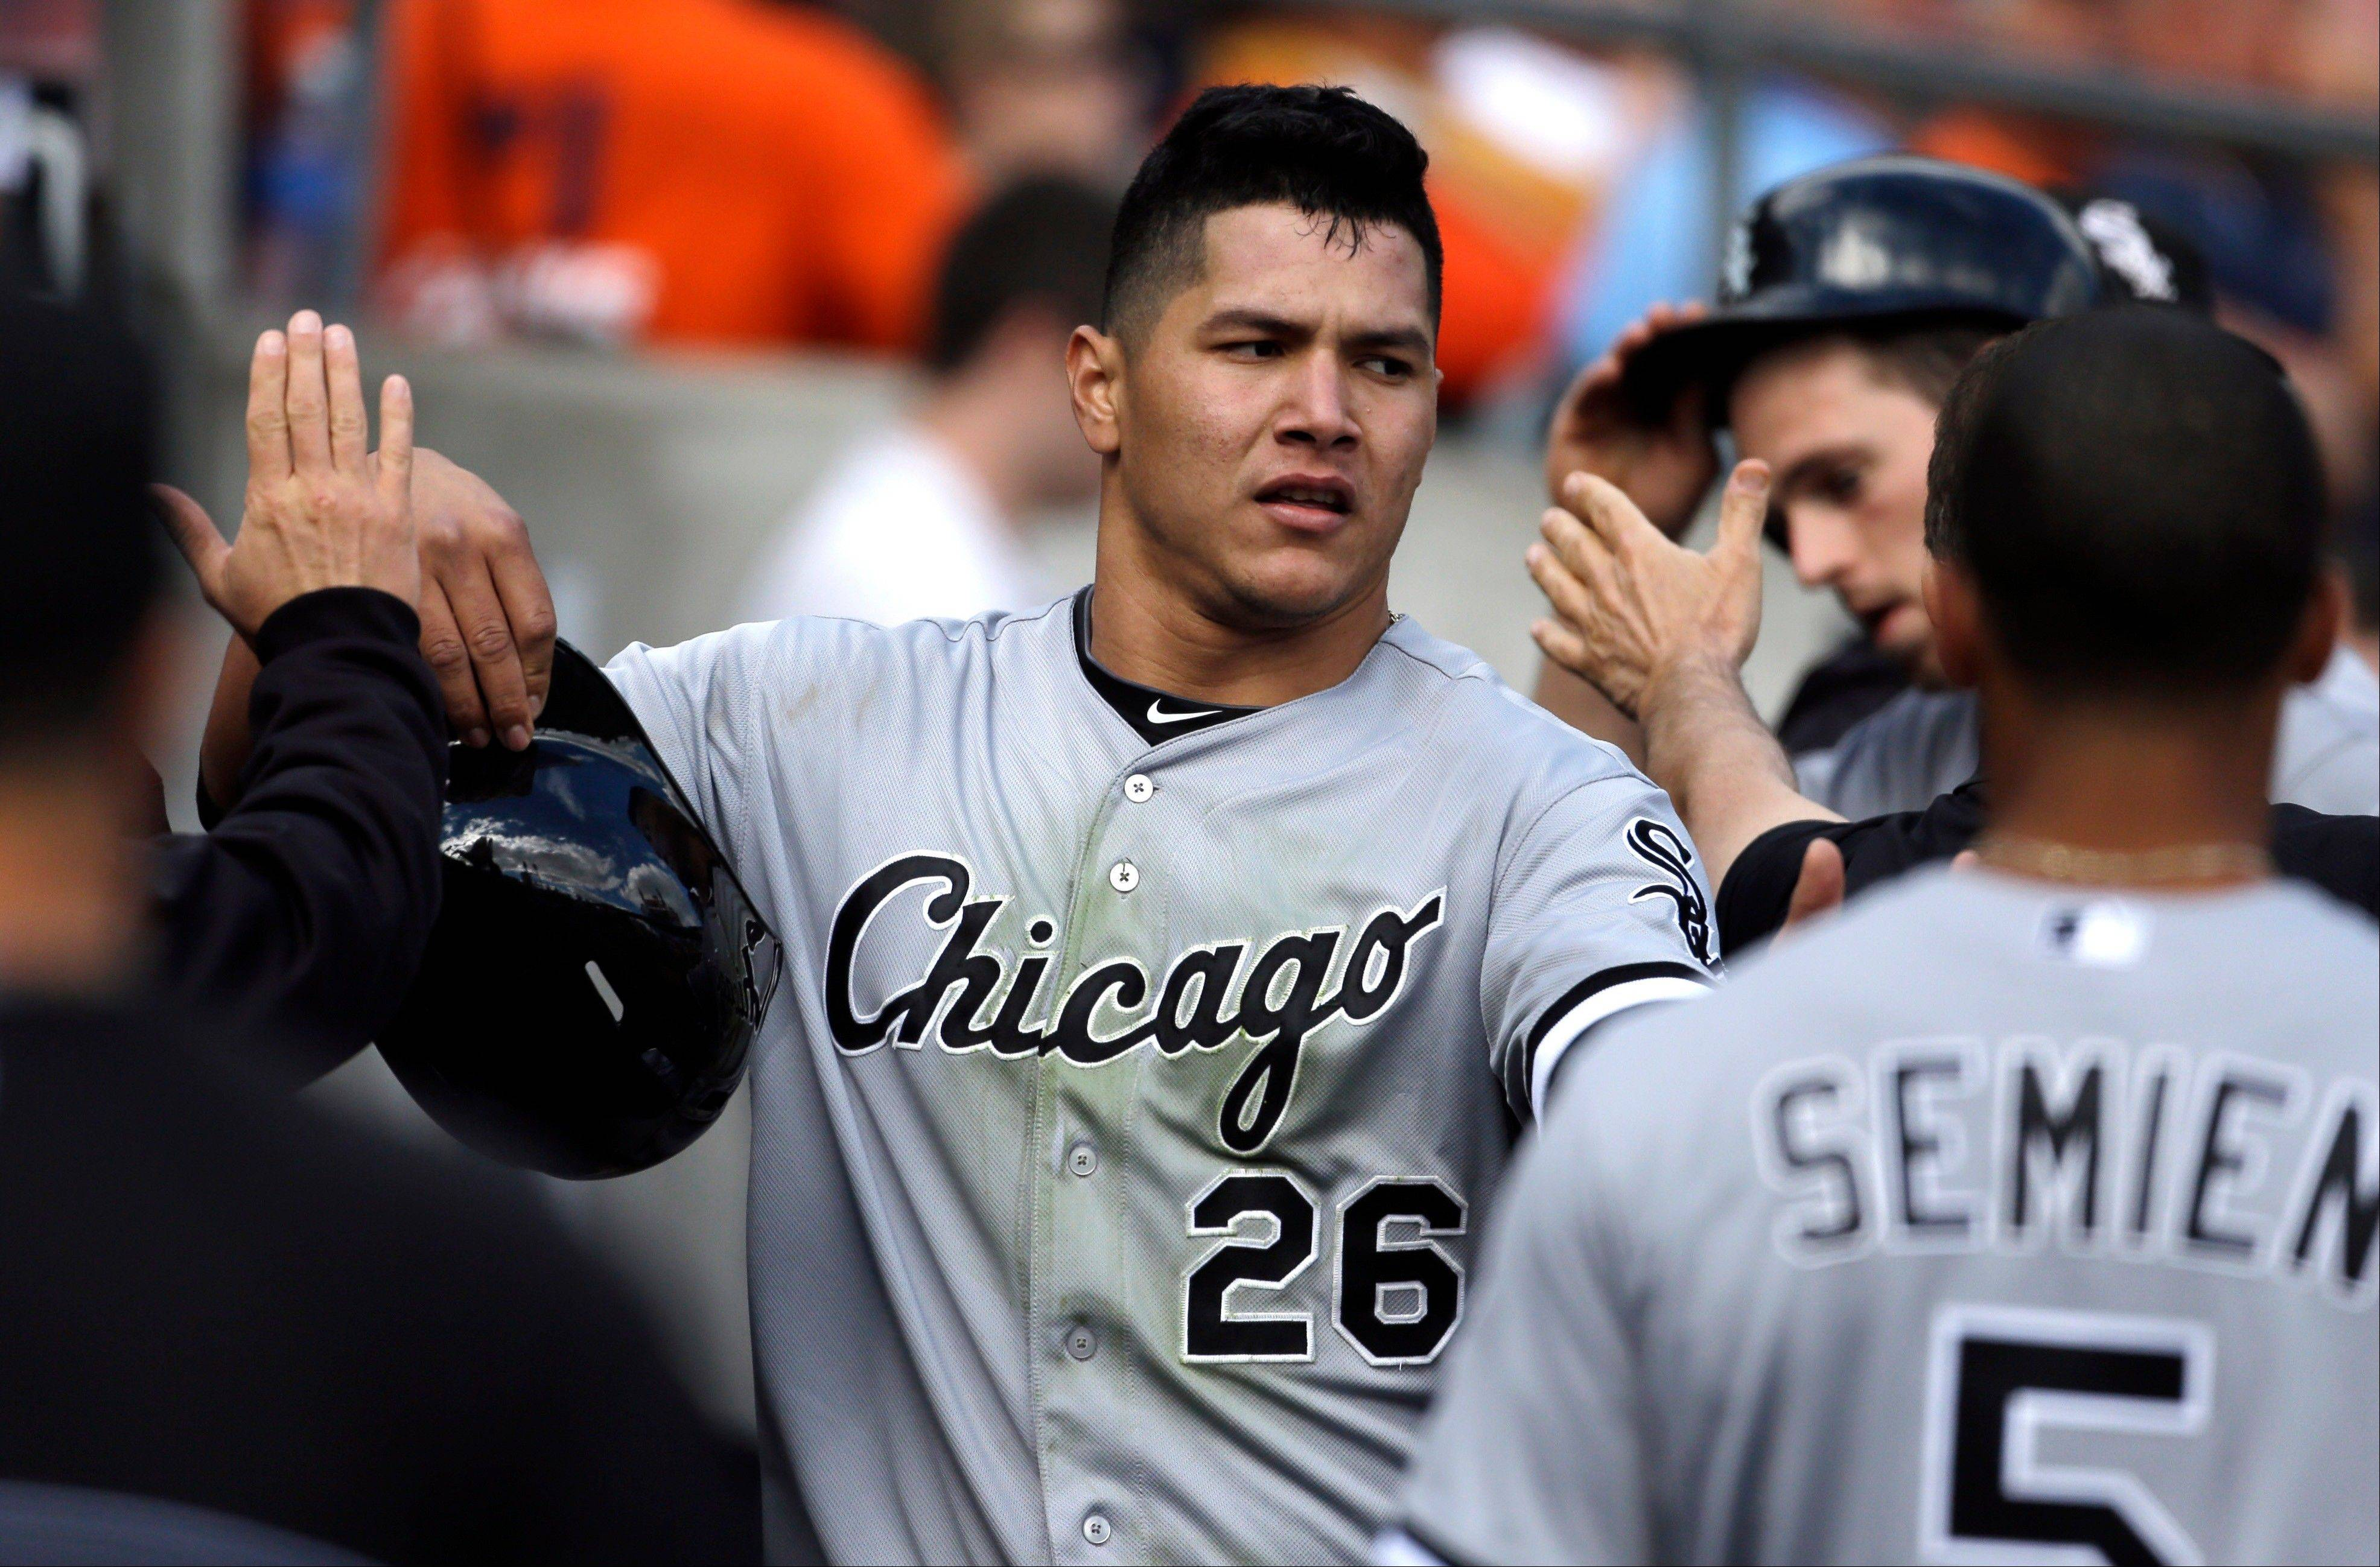 White Sox right fielder Avisail Garcia (26) is congratulated in the dugout after scoring on a two-run double hit by teammate Jeff Keppinger during the seventh inning of a baseball game against the Detroit Tigers in Detroit, Sunday, Sept. 22, 2013.